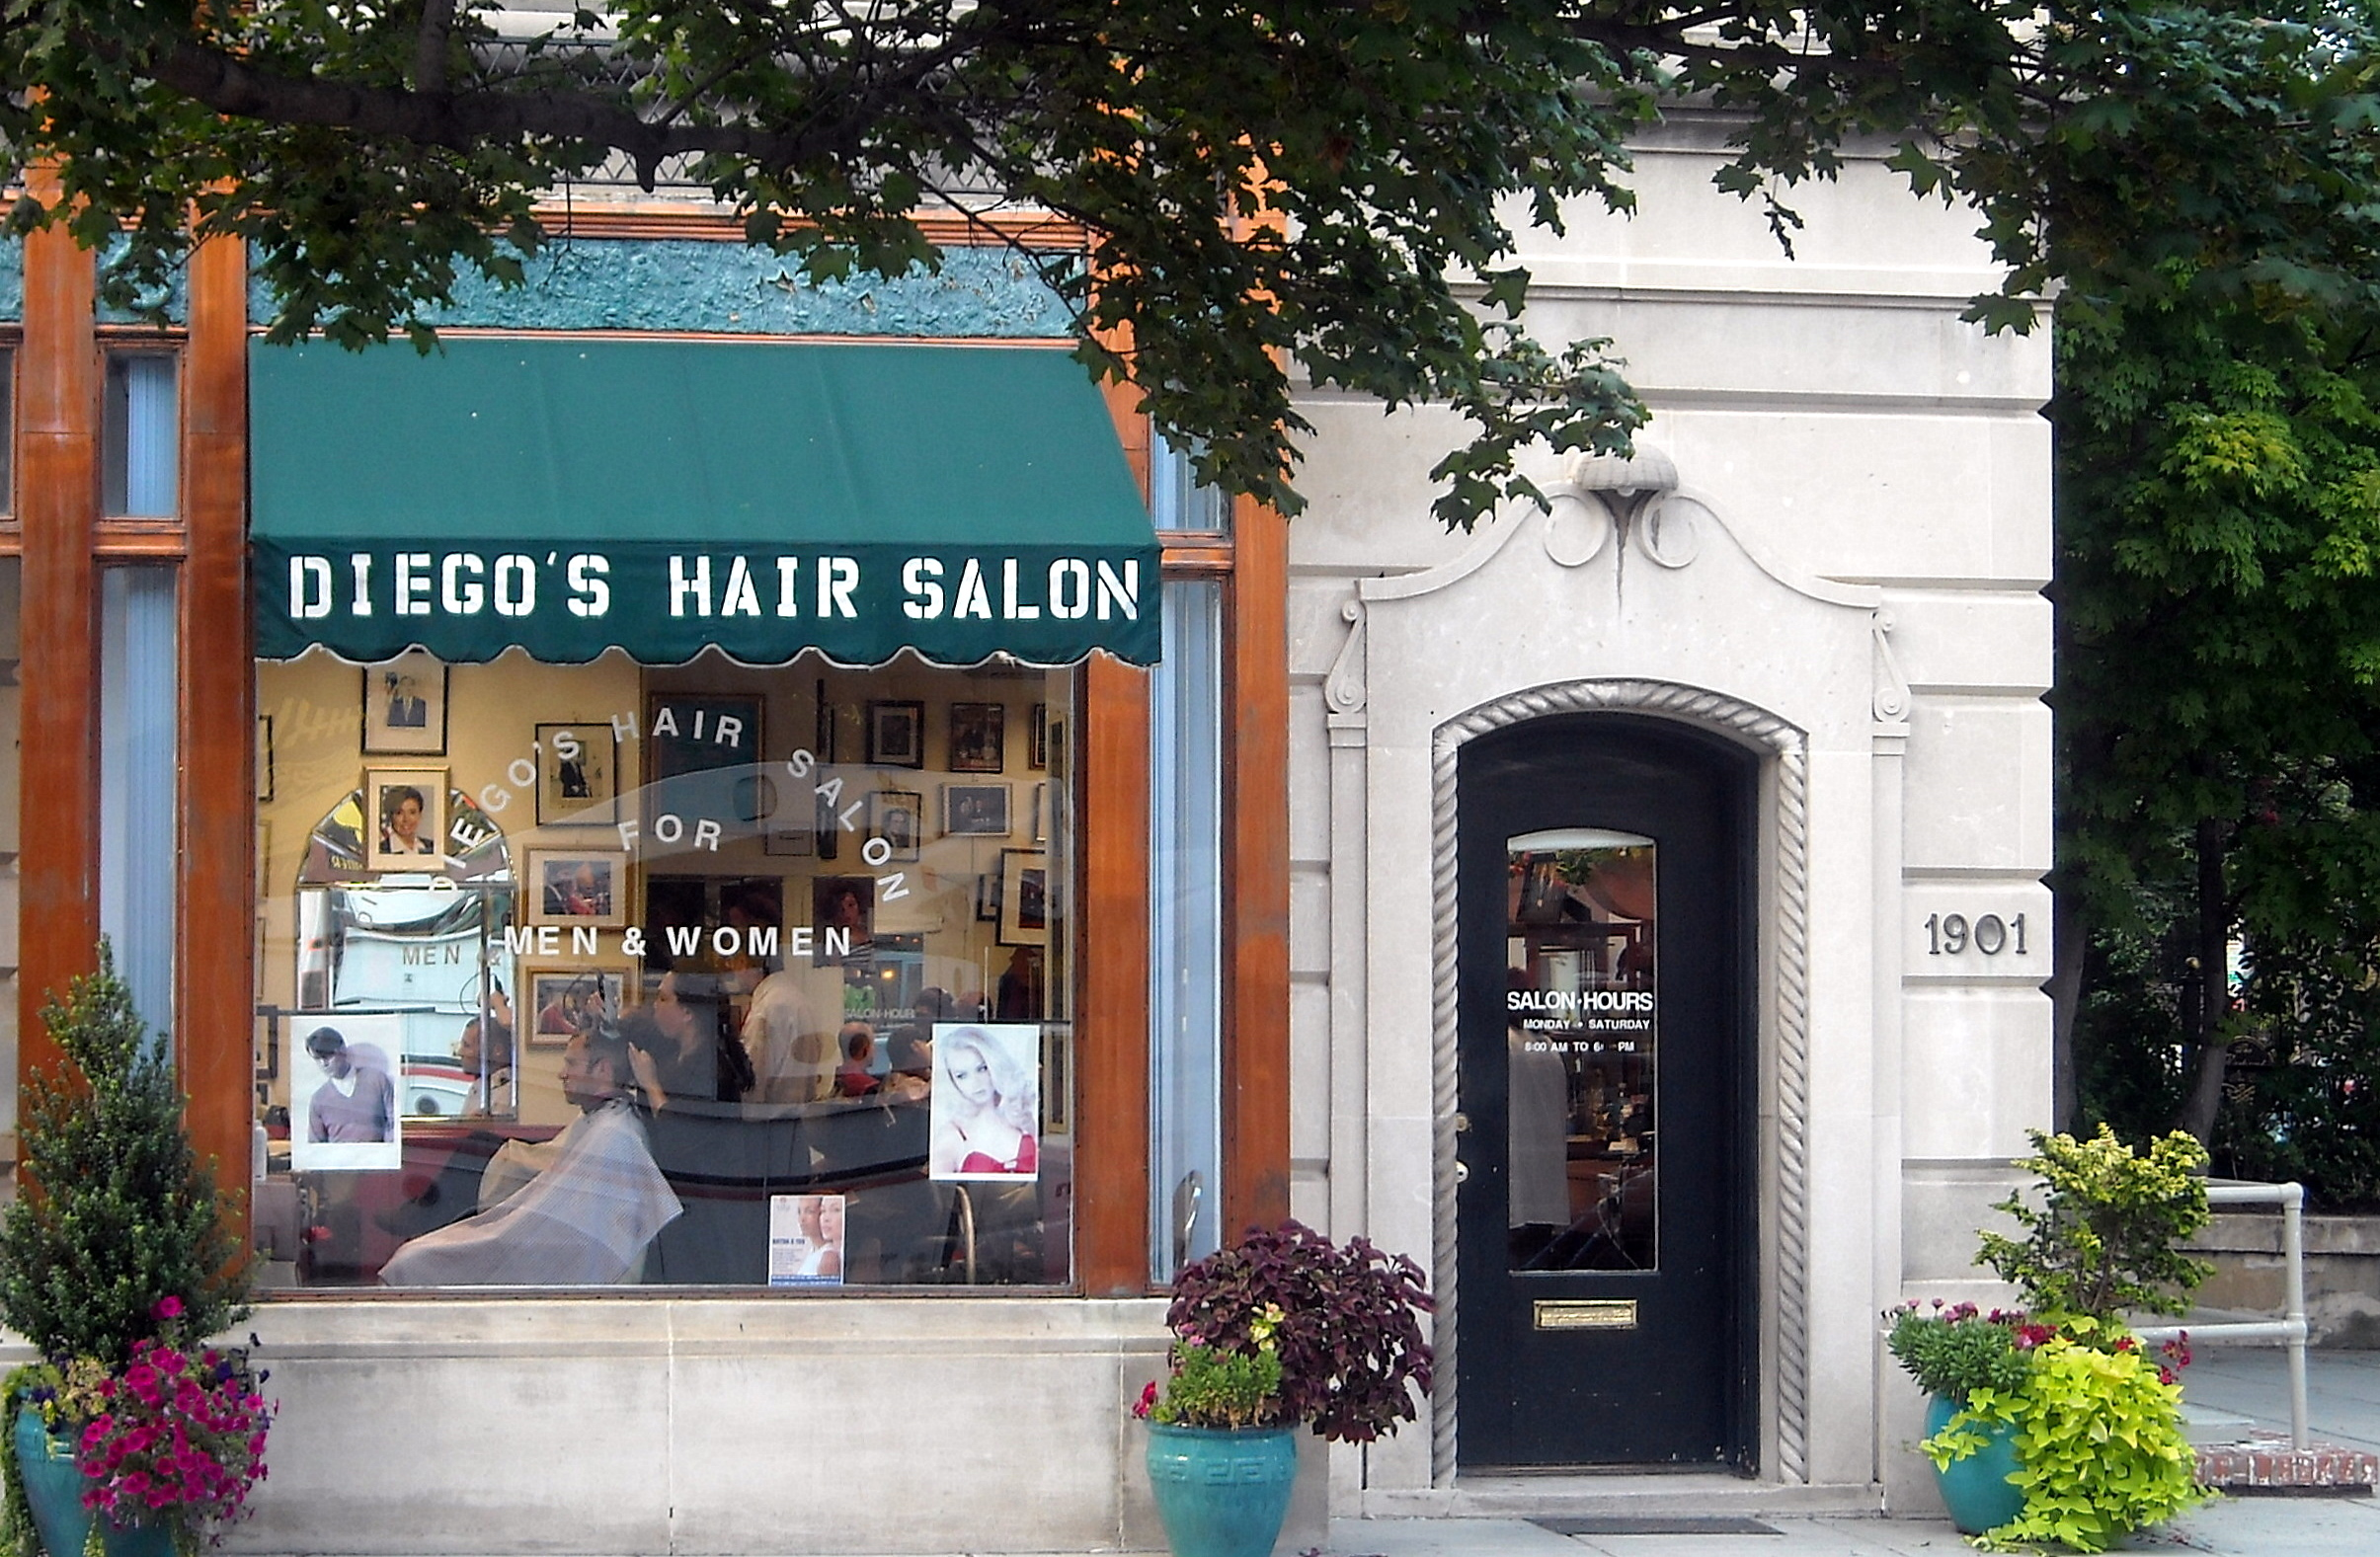 Hairdressing Salon Diego S Hair Salon Wikipedia